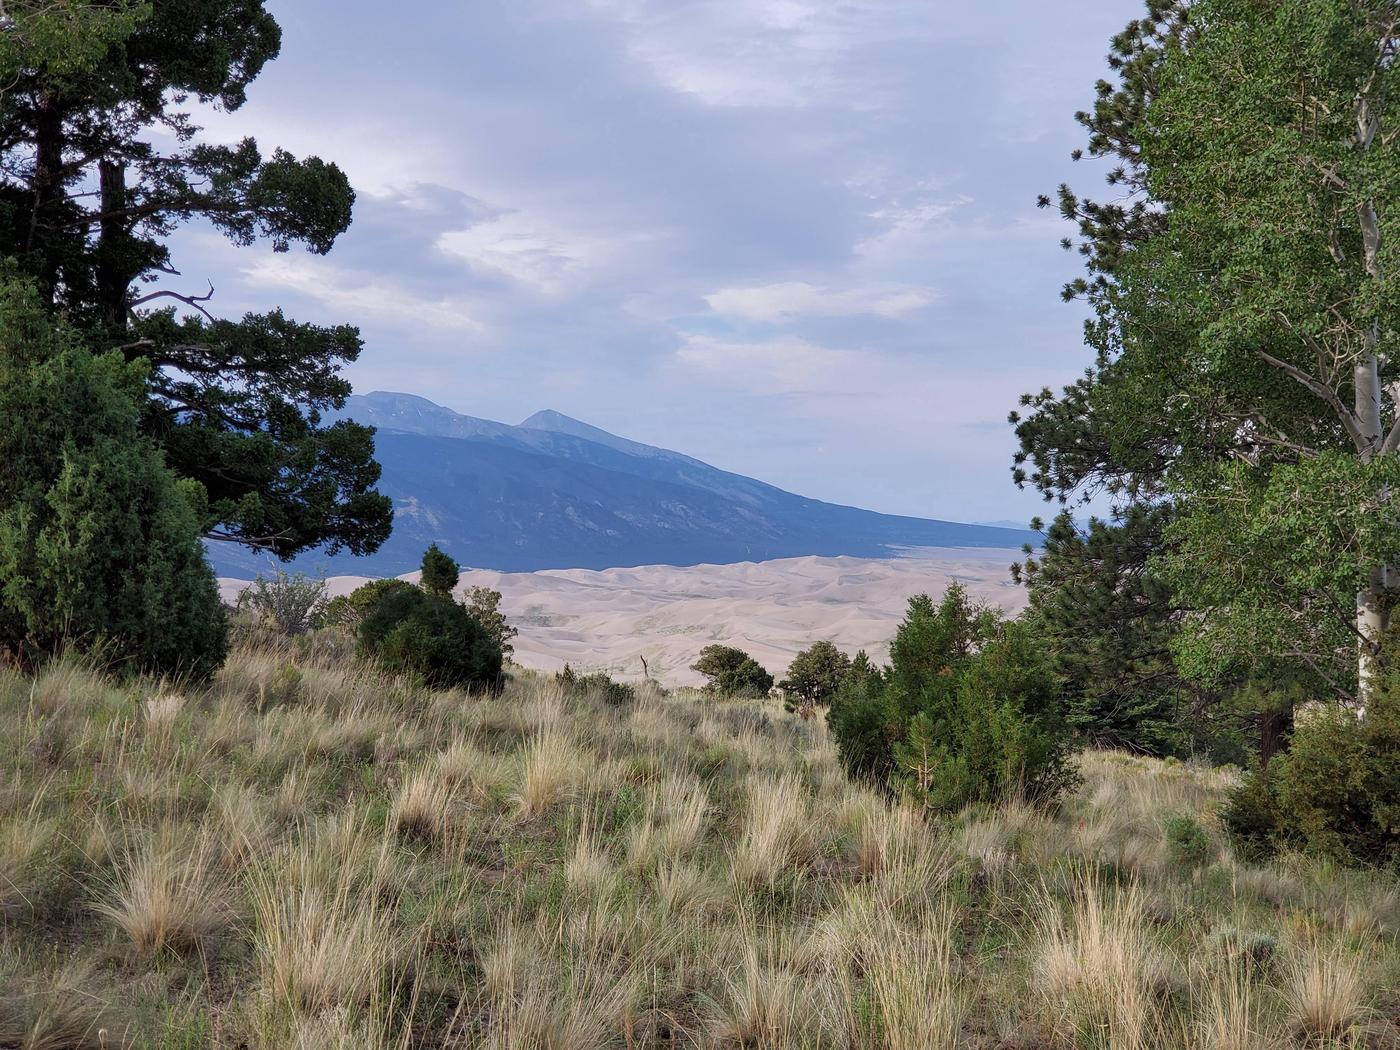 A view of the dunes flanked by aspen and pine trees with the Sangre De Cristo Mountains rising in the background.Aspen is the highest elevation backcountry site, allowing for spectacular views of the dunes and the San Luis Valley.